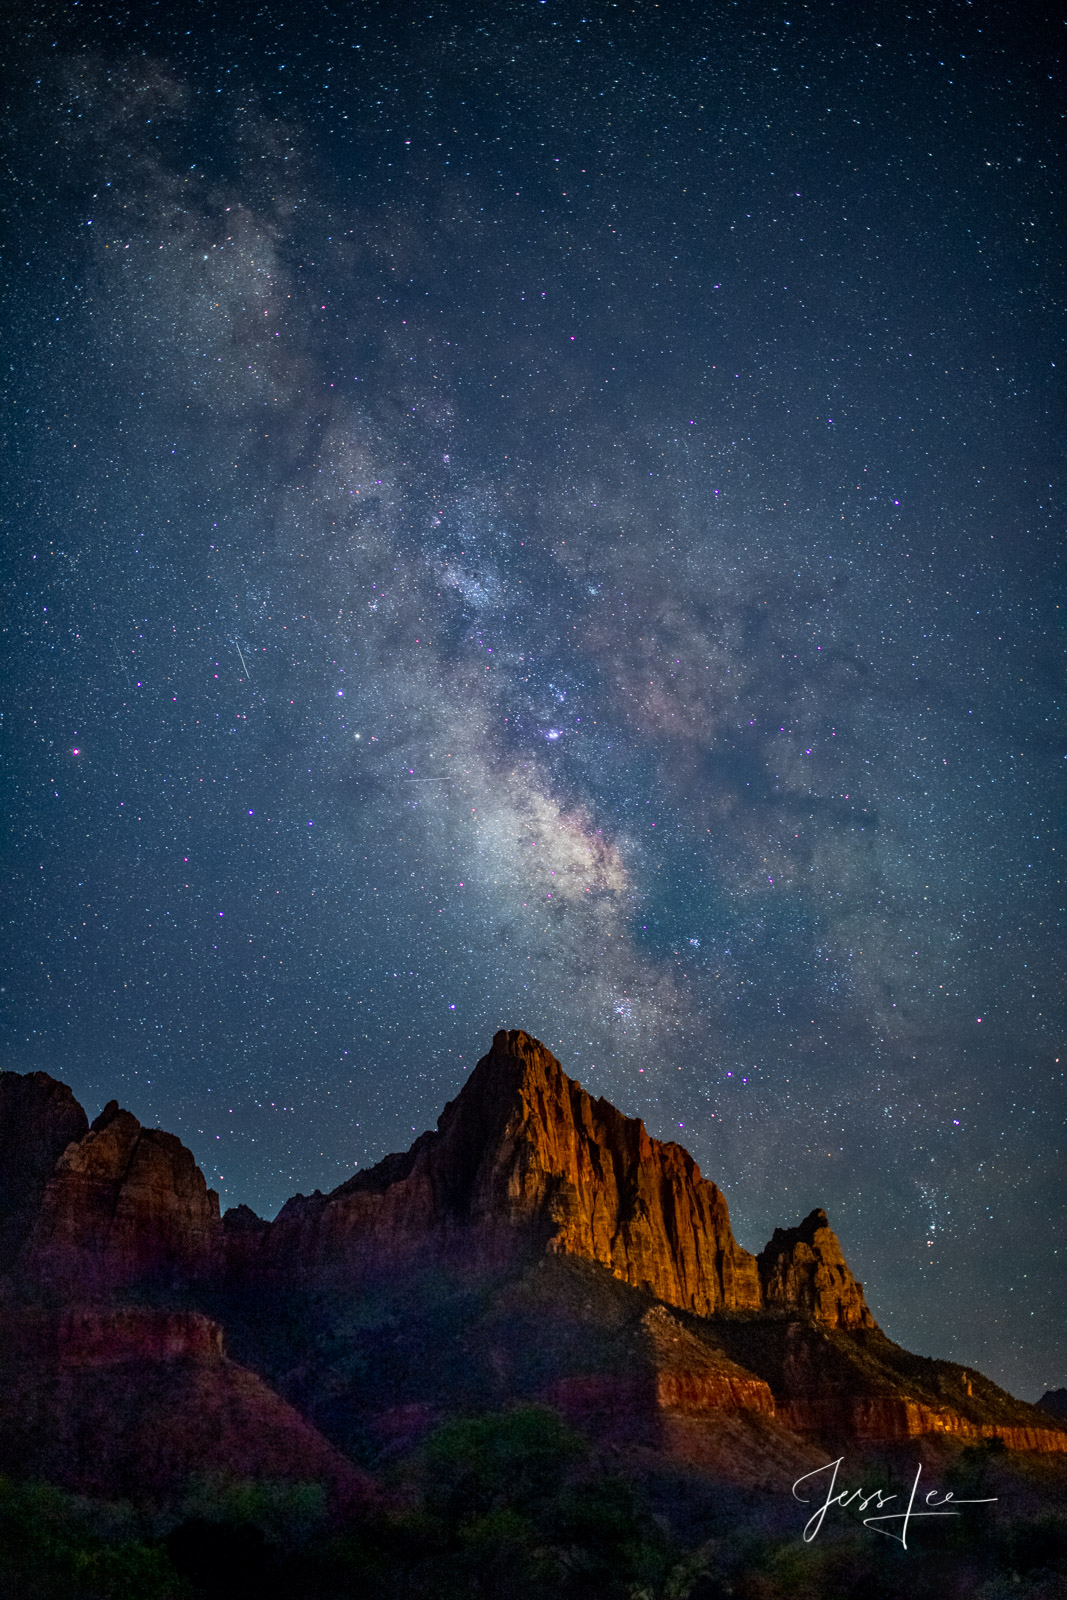 Limited Edition of 50 Exclusive high-resolution Museum Quality Fine Art Prints of the Night Sky over the Watchman in Zion National...